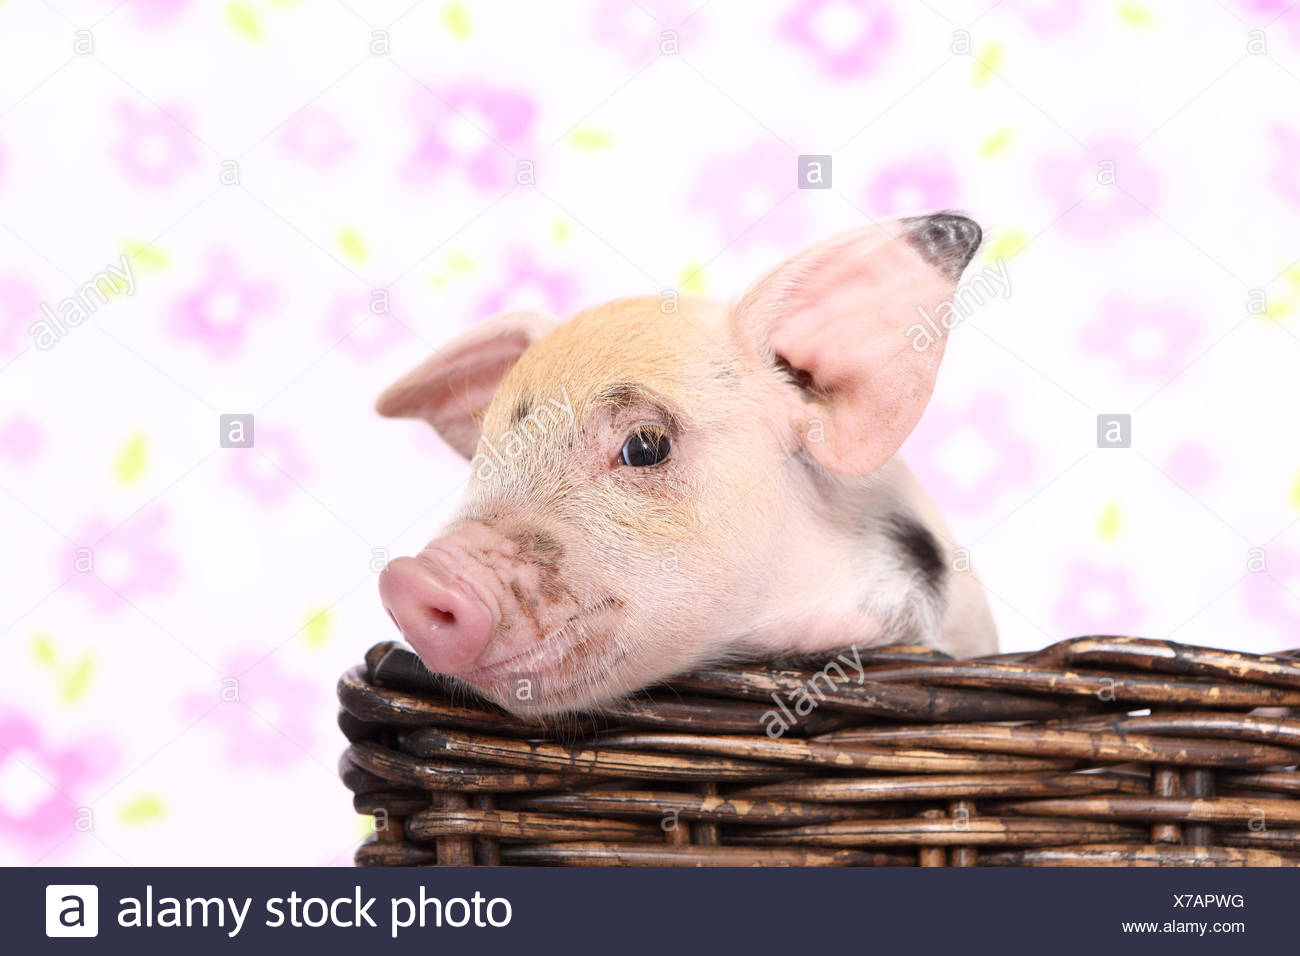 Domestic Pig, Turopolje x ?. Piglet in a basket. Studio picture seen against a white background with flower print. Germany - Stock Image